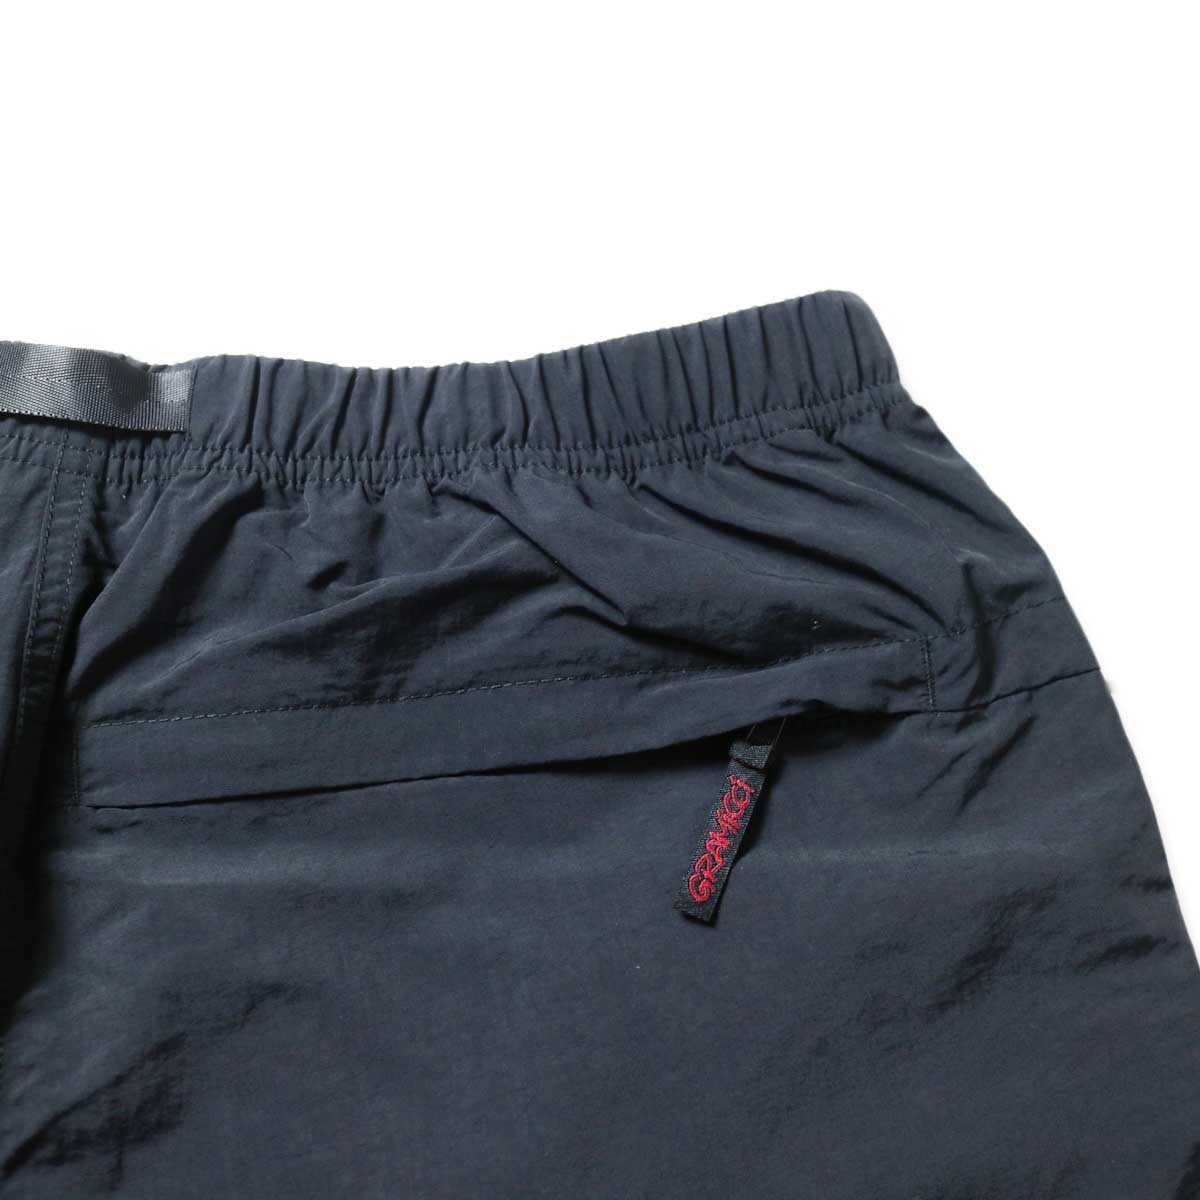 GRAMICCI / SHELL PACKABLE SHORTS (Black)バックポケット